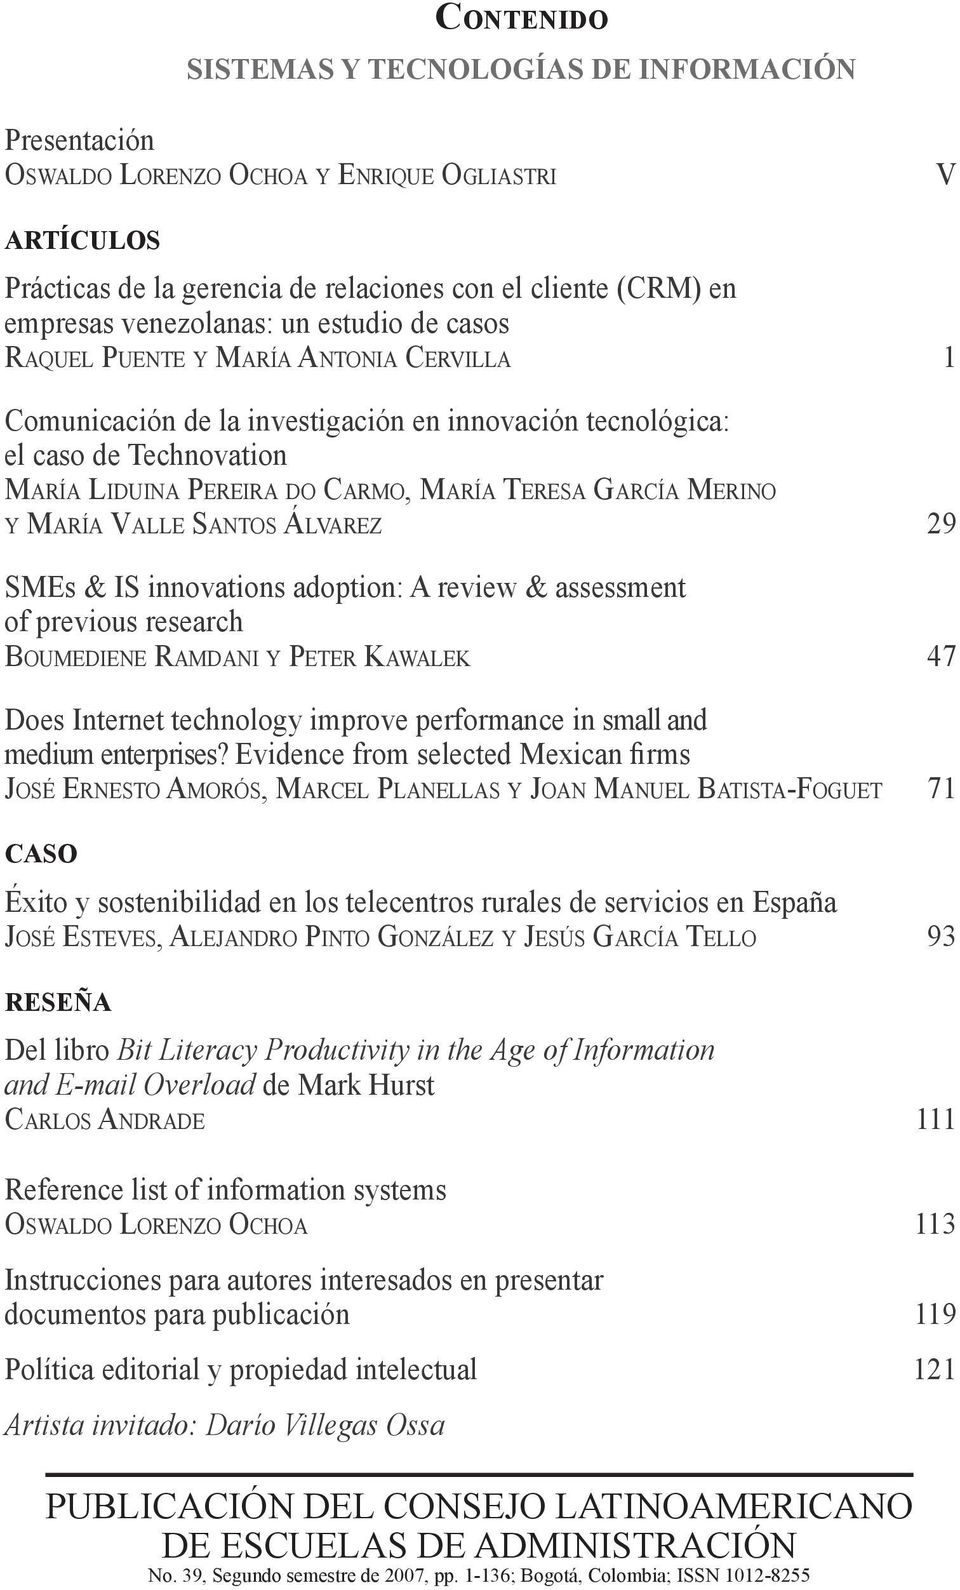 MERINO Y MARÍA VALLE SANTOS ÁLVAREZ 29 SMEs & IS innovations adoption: A review & assessment of previous research BOUMEDIENE RAMDANI Y PETER KAWALEK 47 Does Internet technology improve performance in